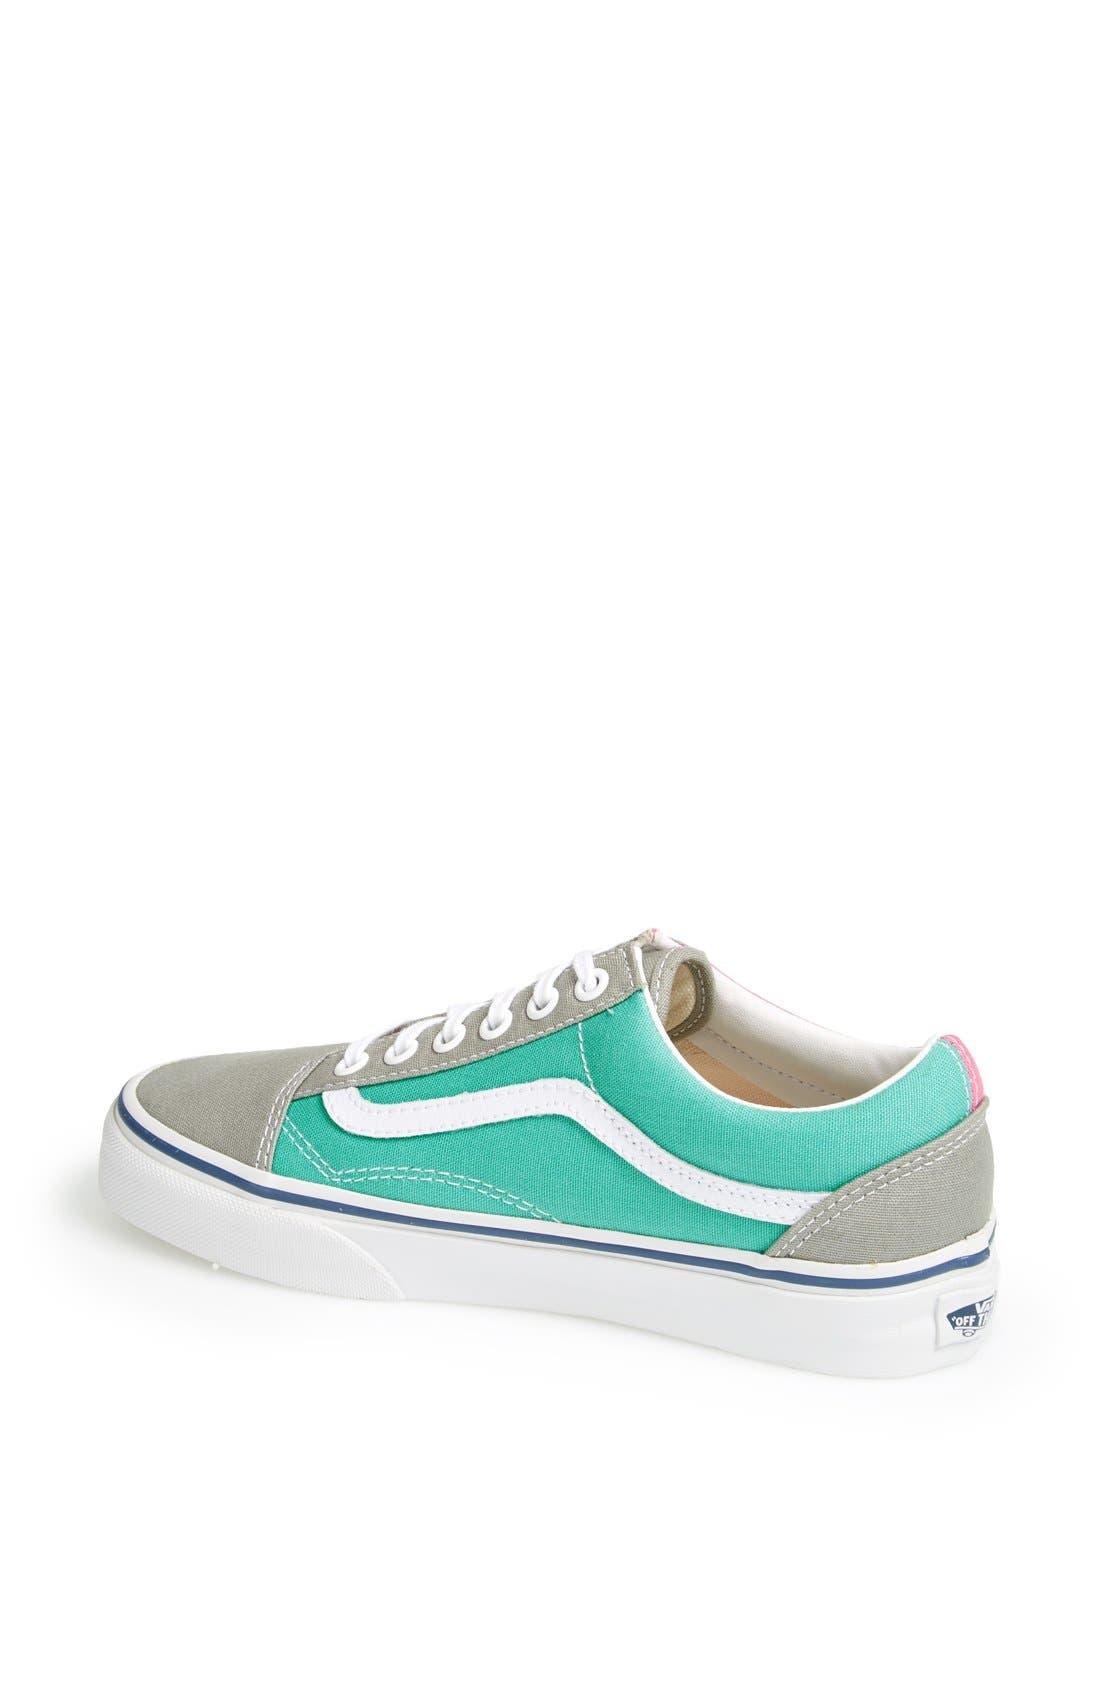 Alternate Image 2  - Vans 'Old Skool' Sneaker (Women)